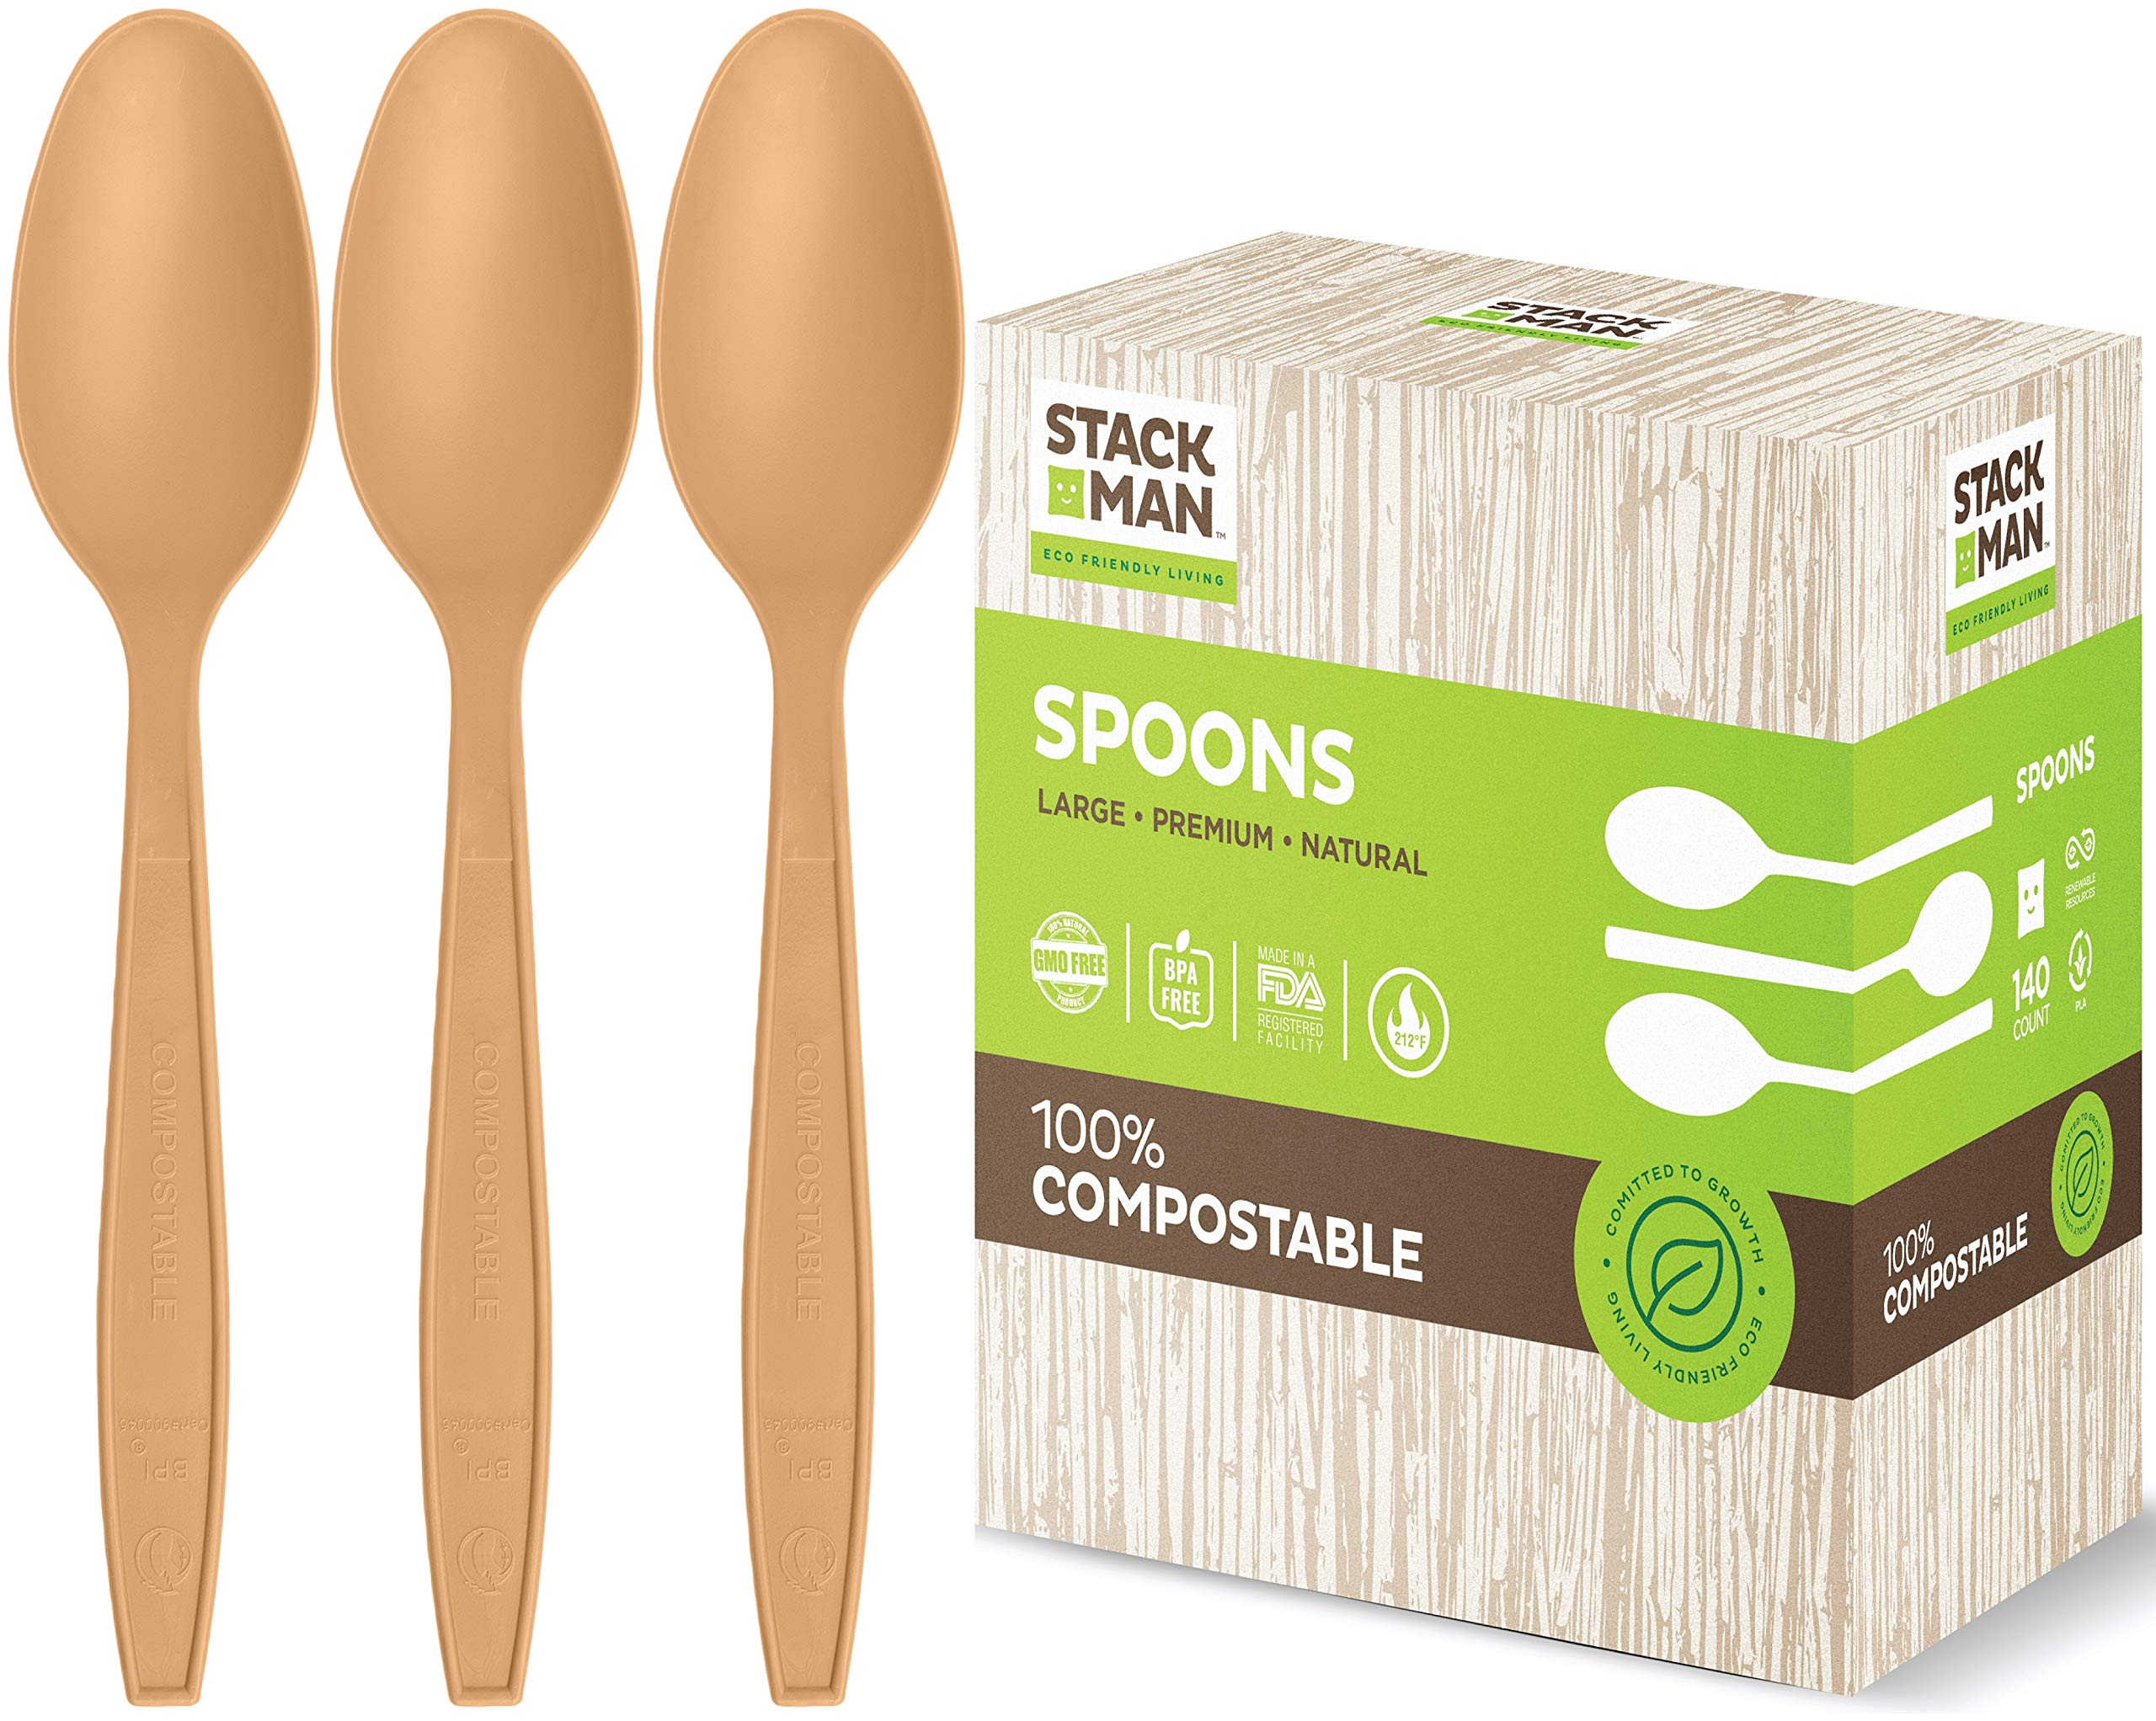 Stack Man Disposable Spoons [140 Pack] 100% Compostable Plastic Silverware, Large Premium Heavy-Duty Flatware Utensils Eco Friendly BPi Certified, 6.5 Inch, Organic Natural Wood Color Tableware by Stack Man